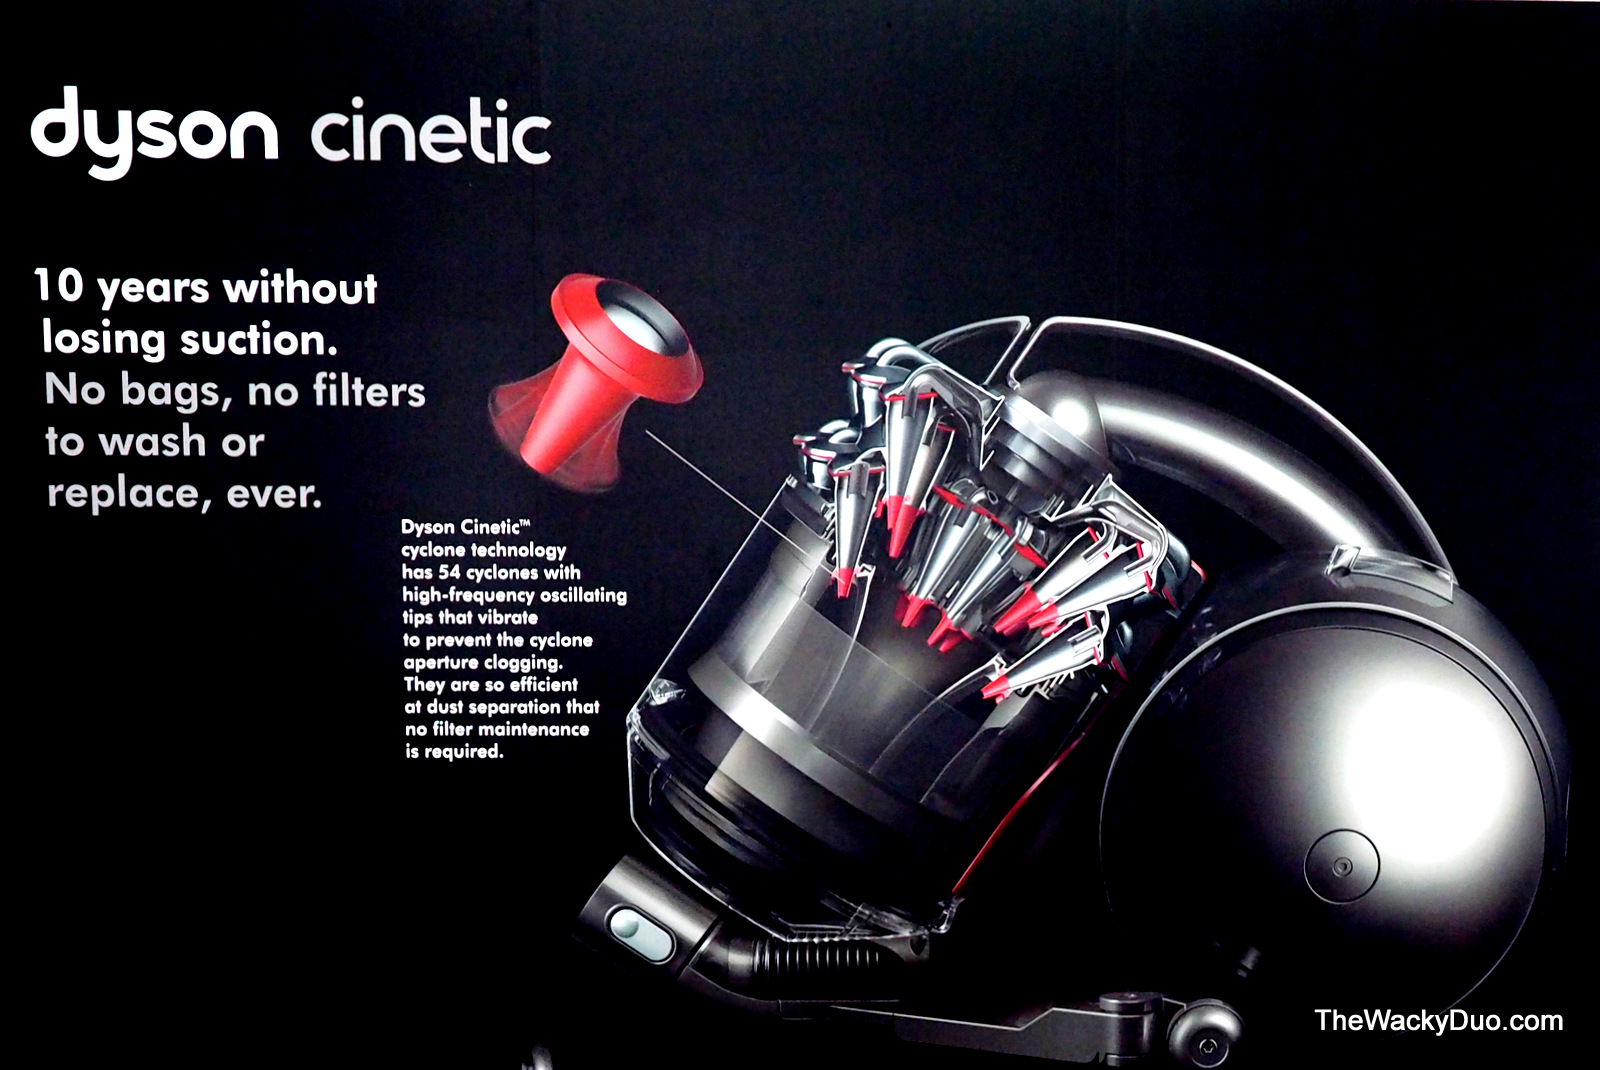 dyson dc52 cinetic vacuum say goodbye to bags and filters - Dyson Cinetic